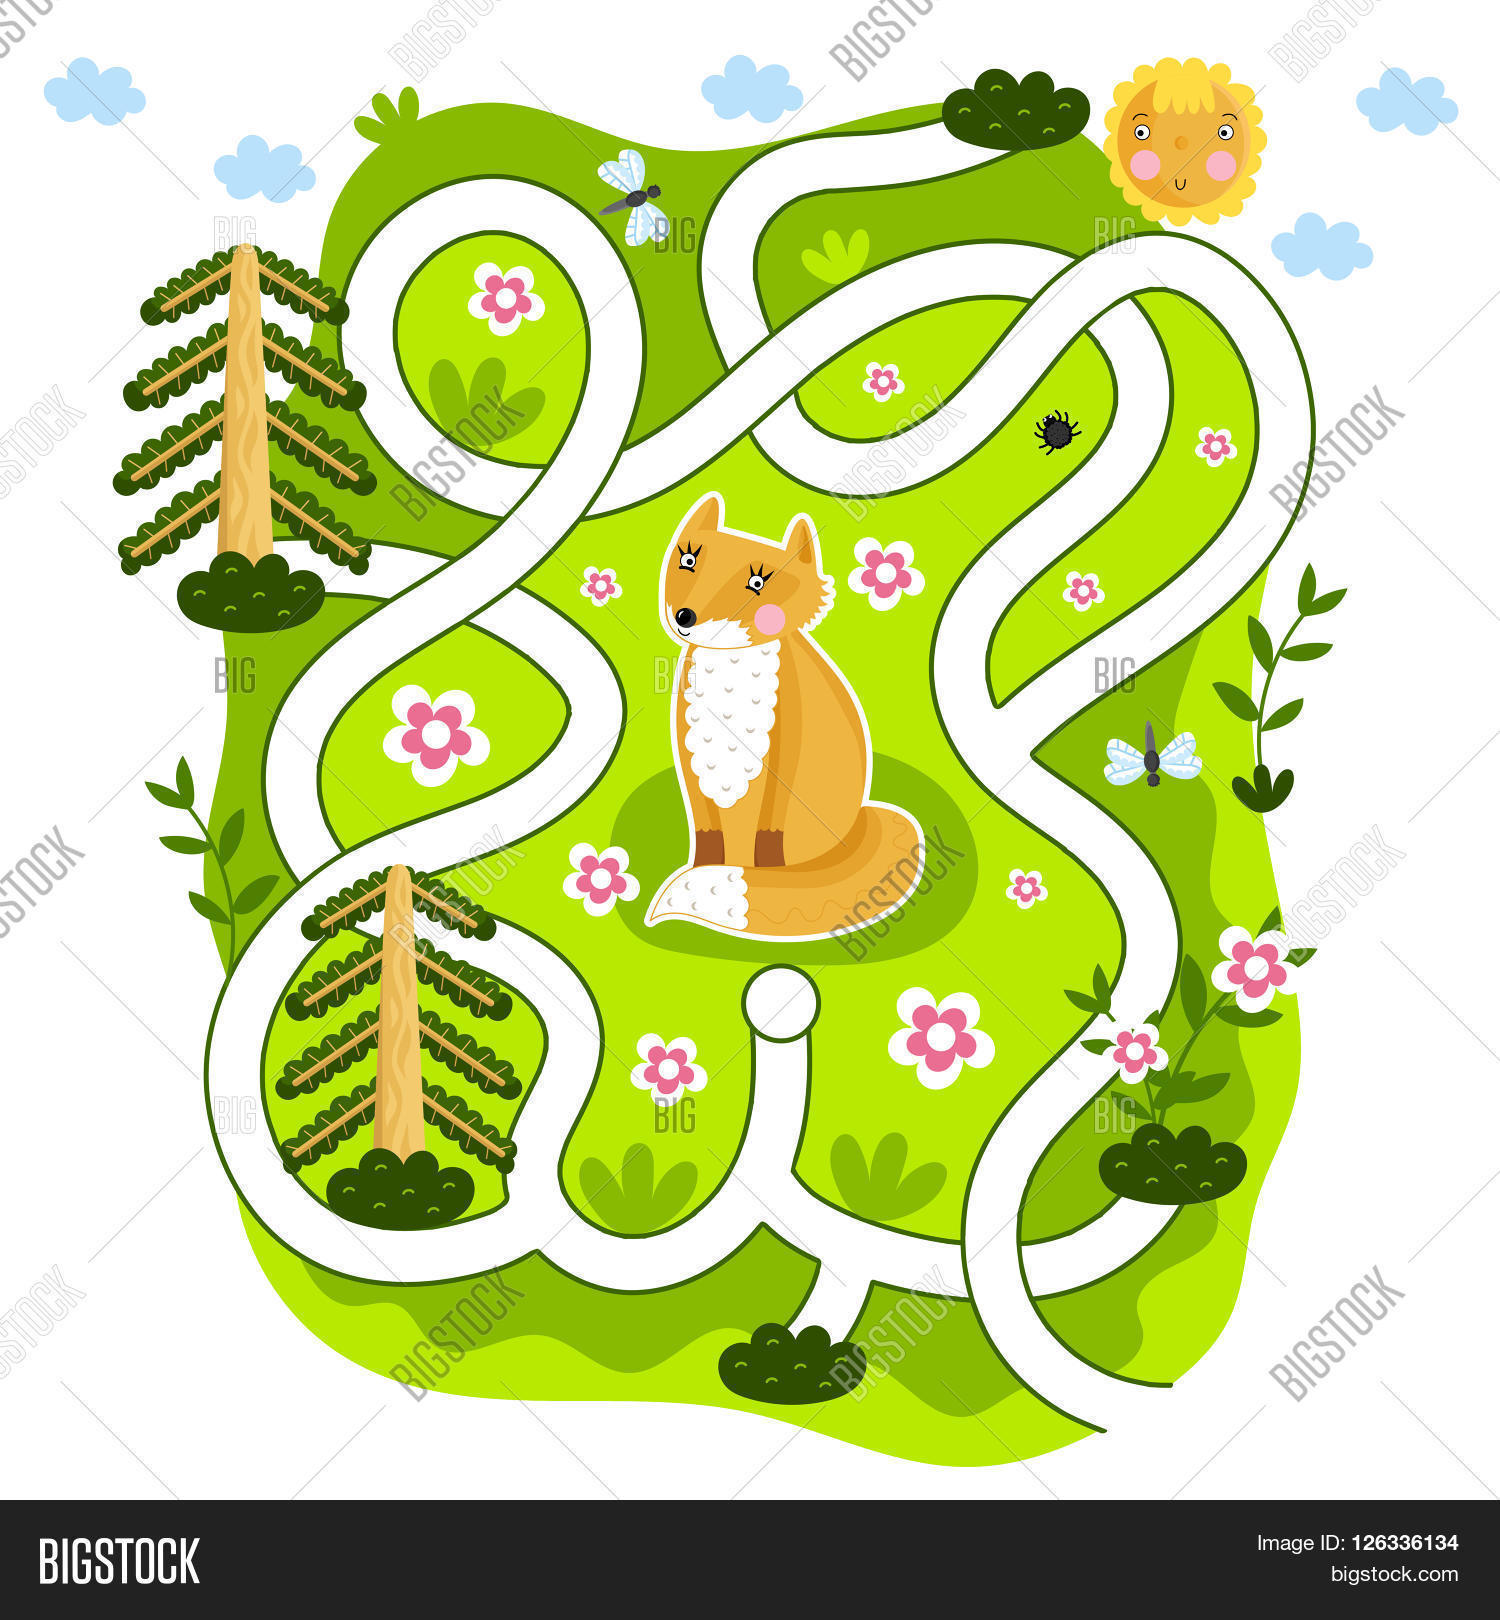 Maze Raster, Maze Game Image & Photo (Free Trial) | Bigstock